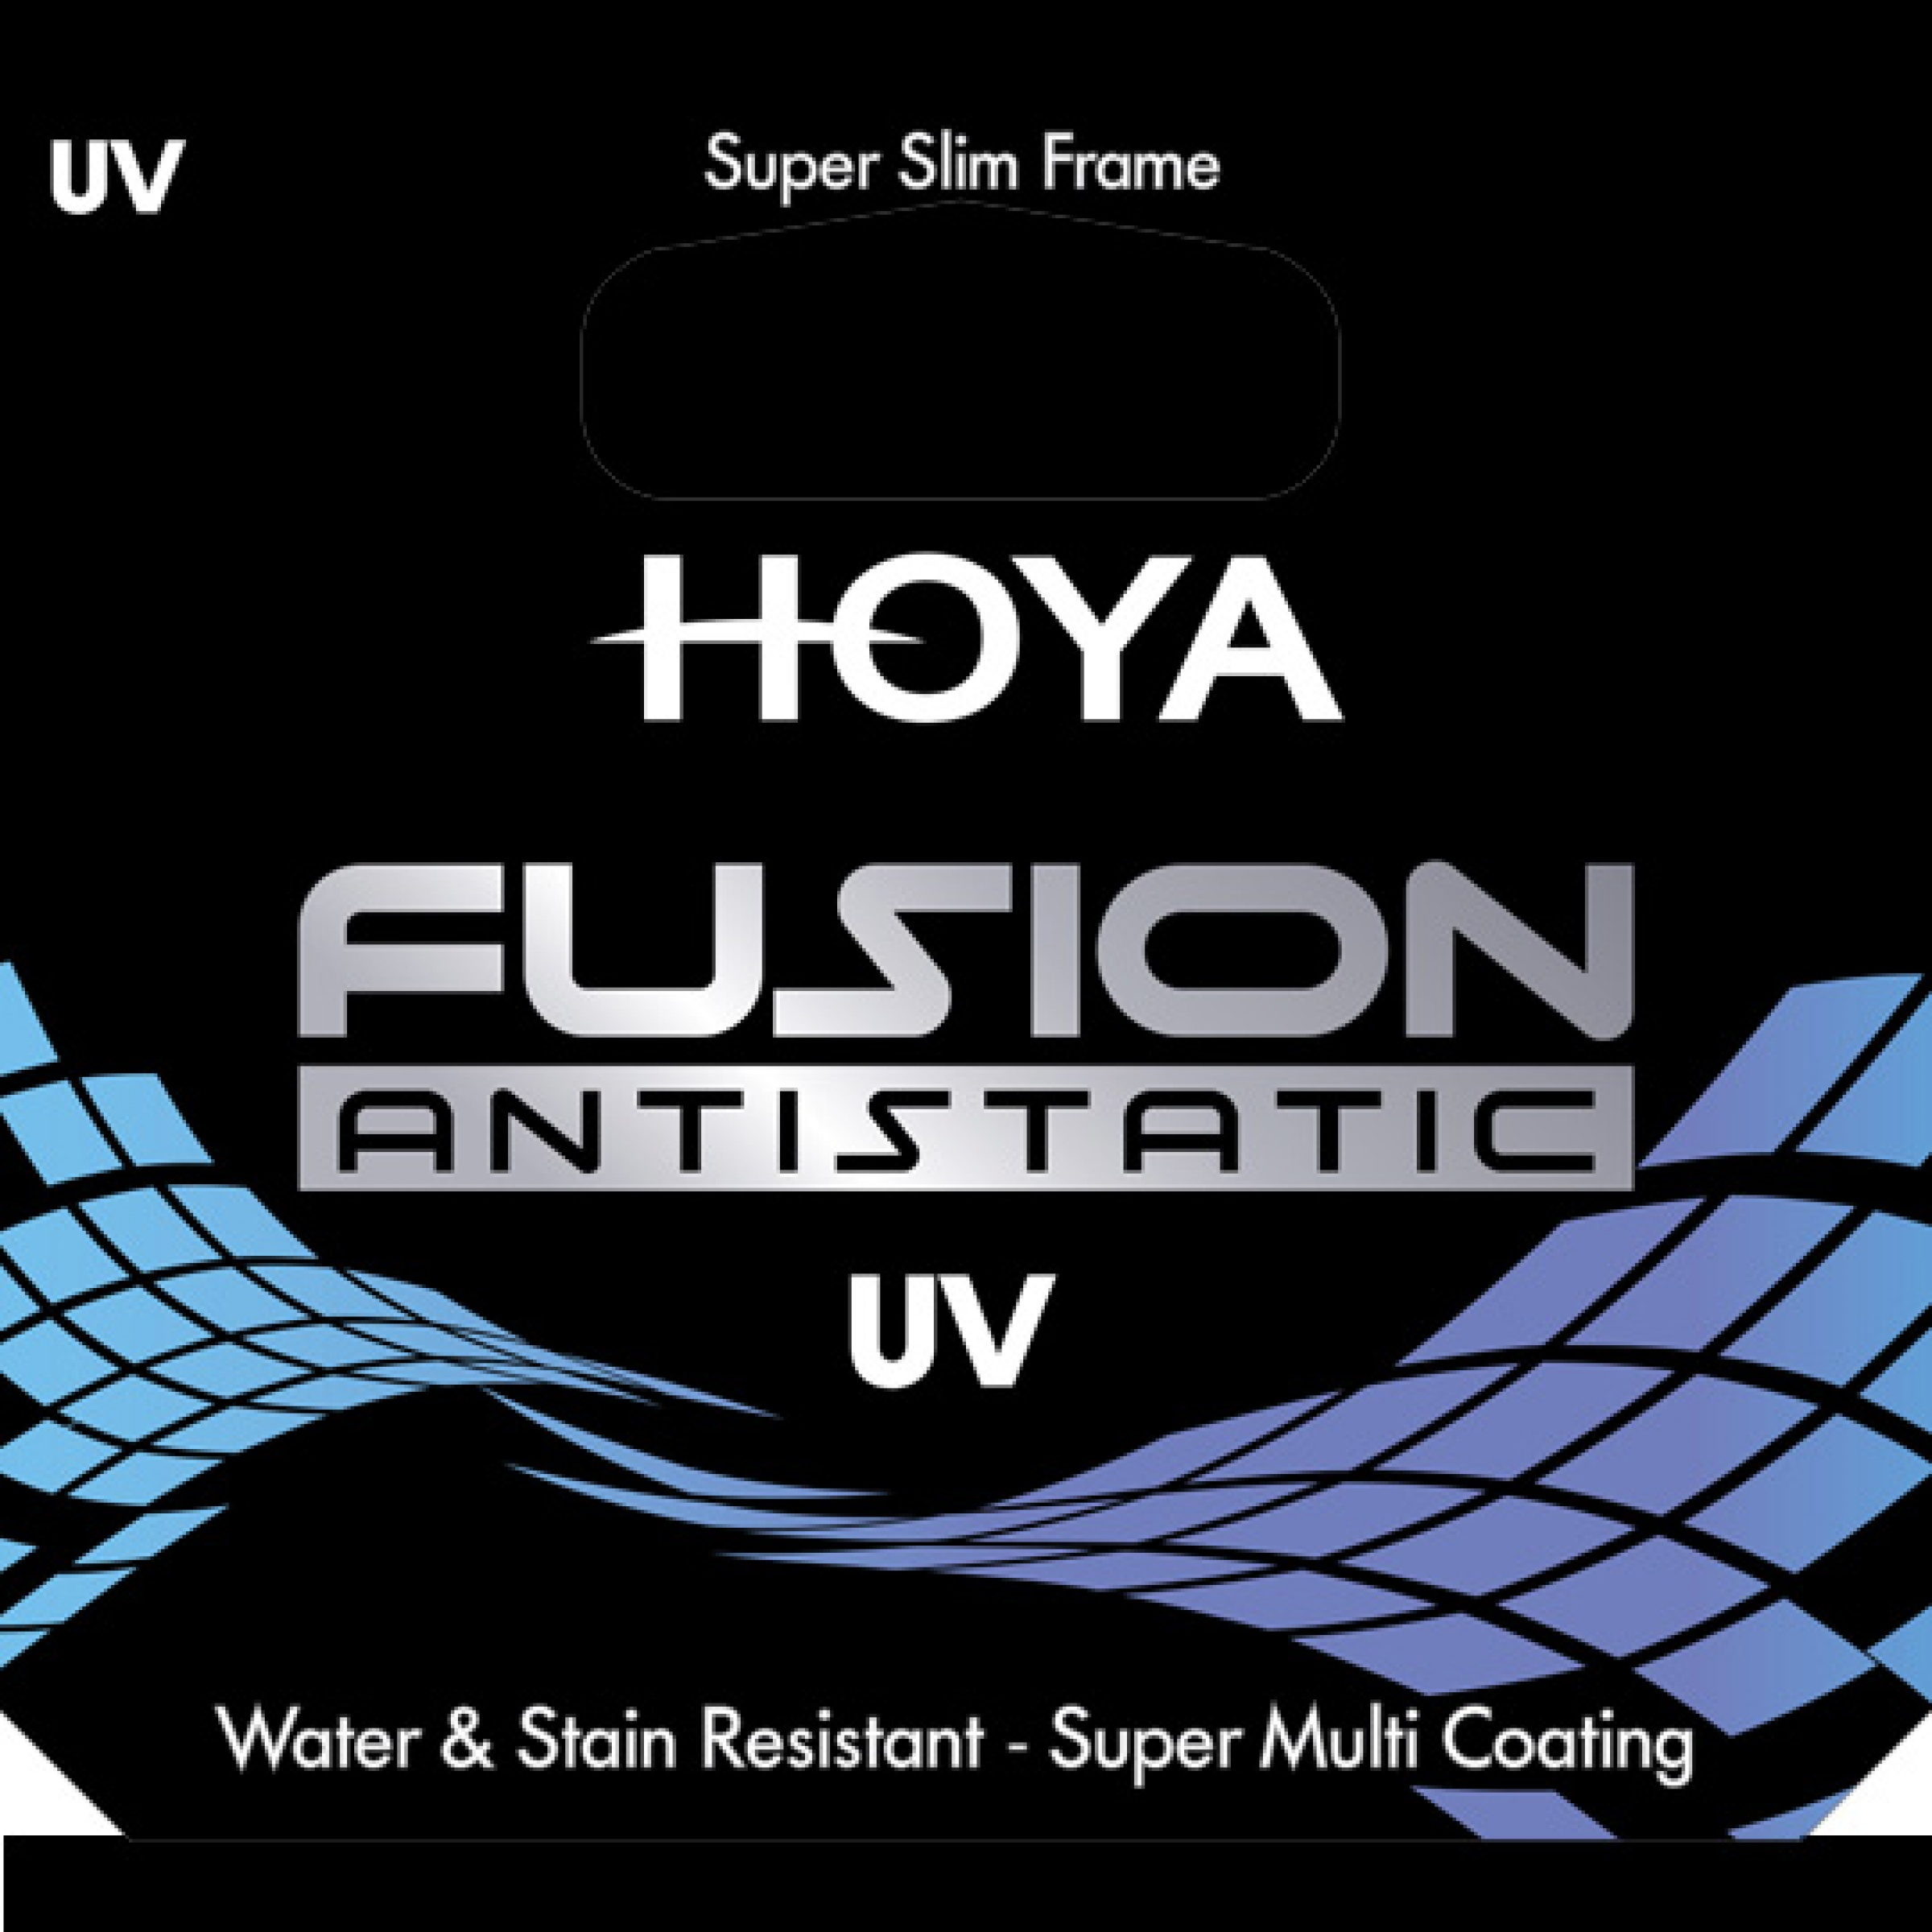 Hoya-52mm-UV-Fusion-Antistatic